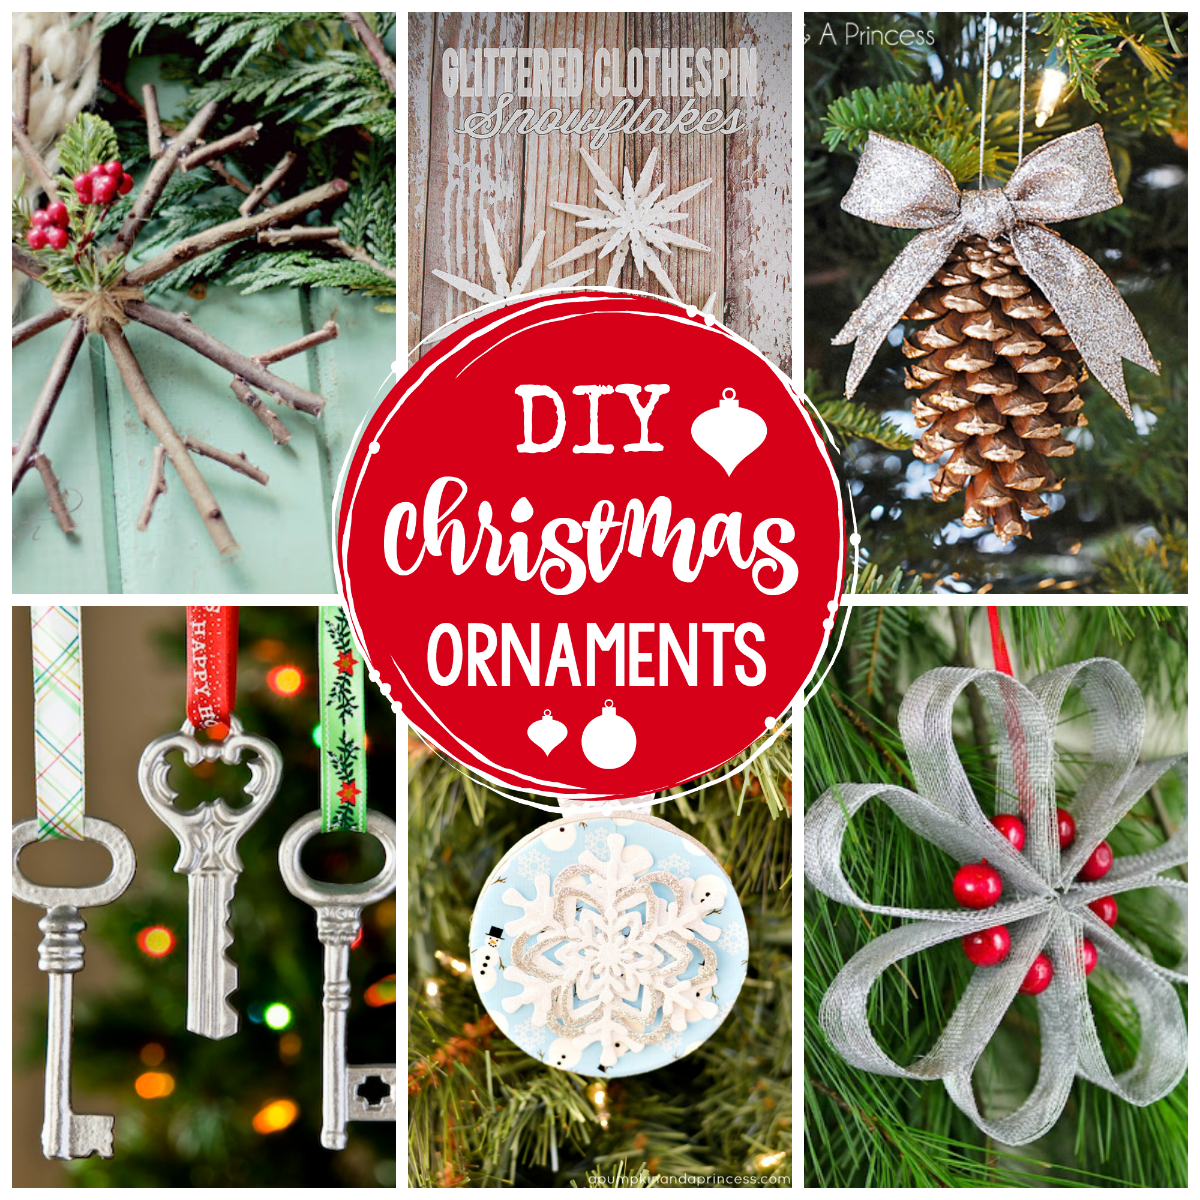 Lollipop Stick Christmas Decorations.25 Diy Christmas Ornaments To Make This Year Crazy Little